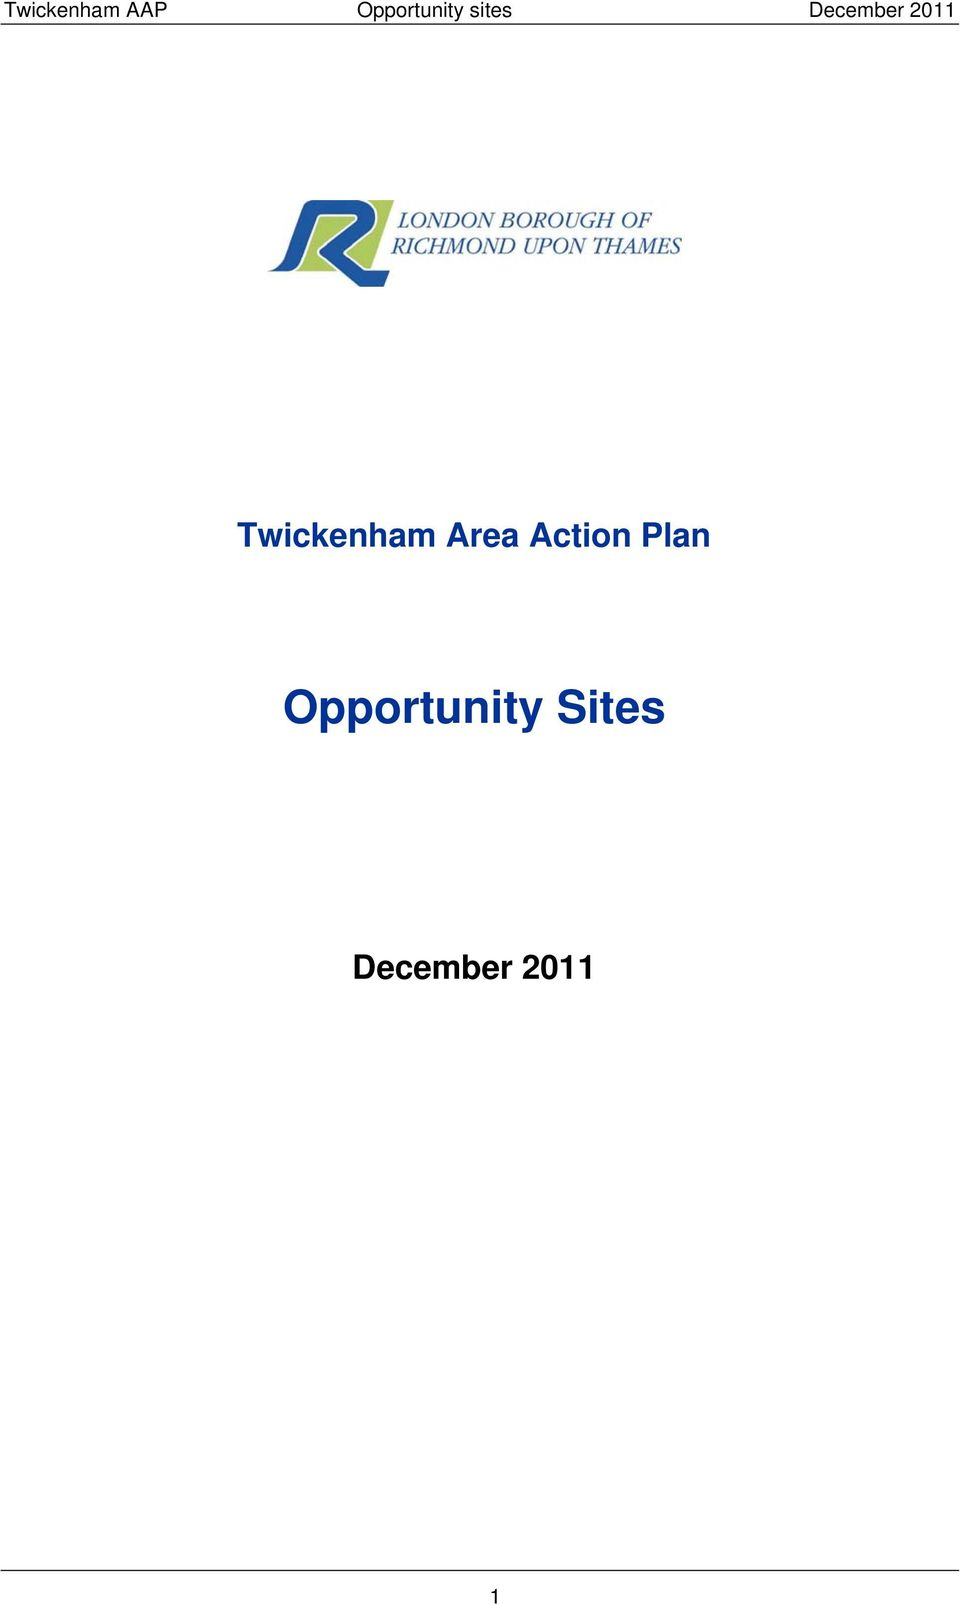 Twickenham Area Action